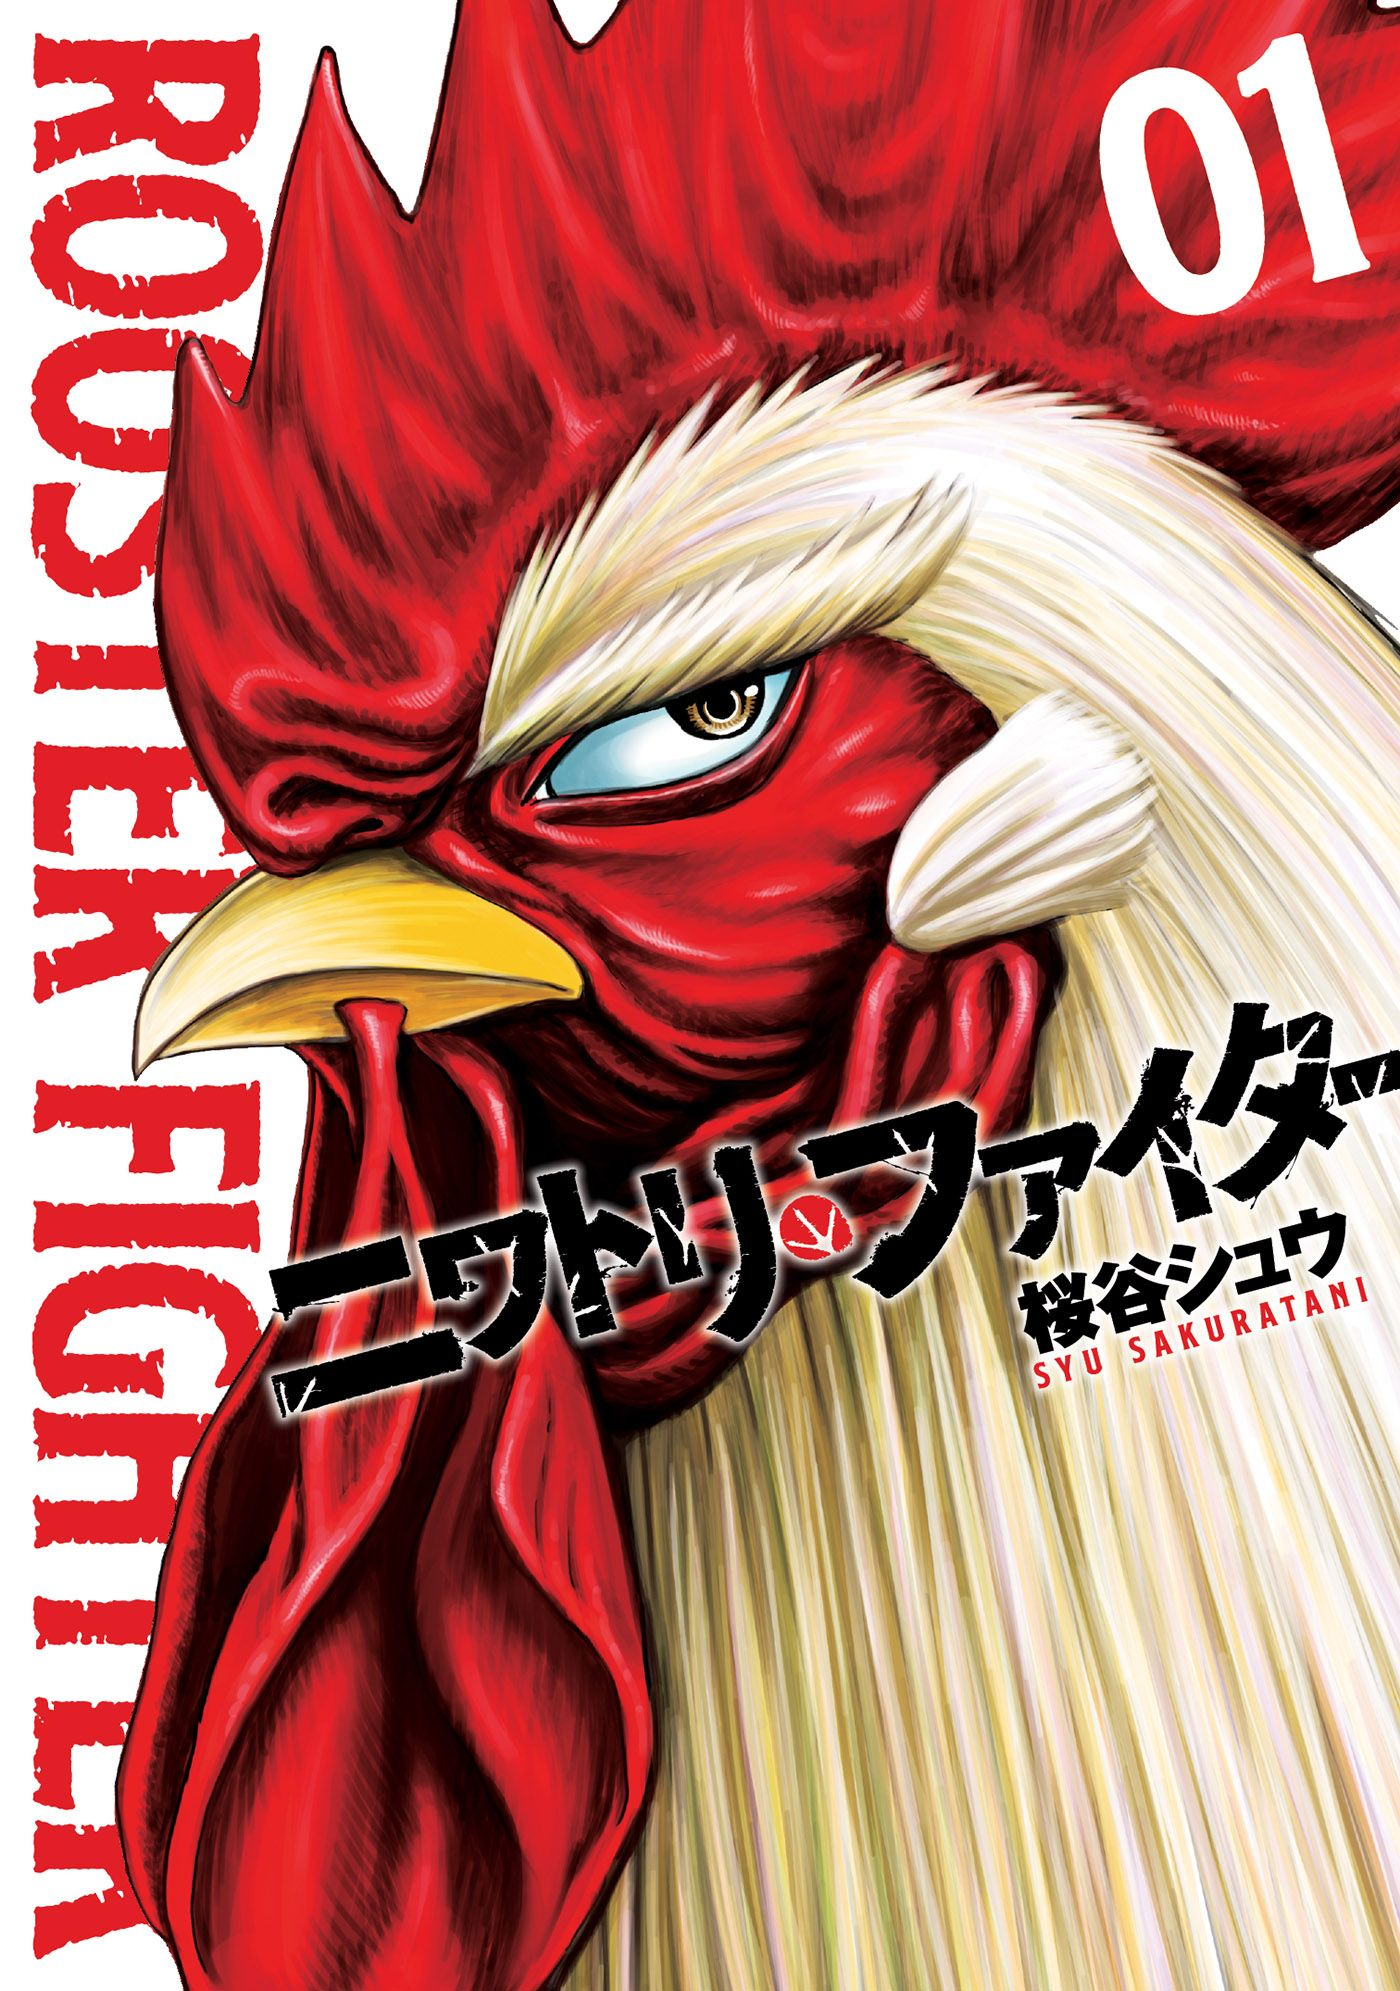 rooster fighter manga volume 1 cover